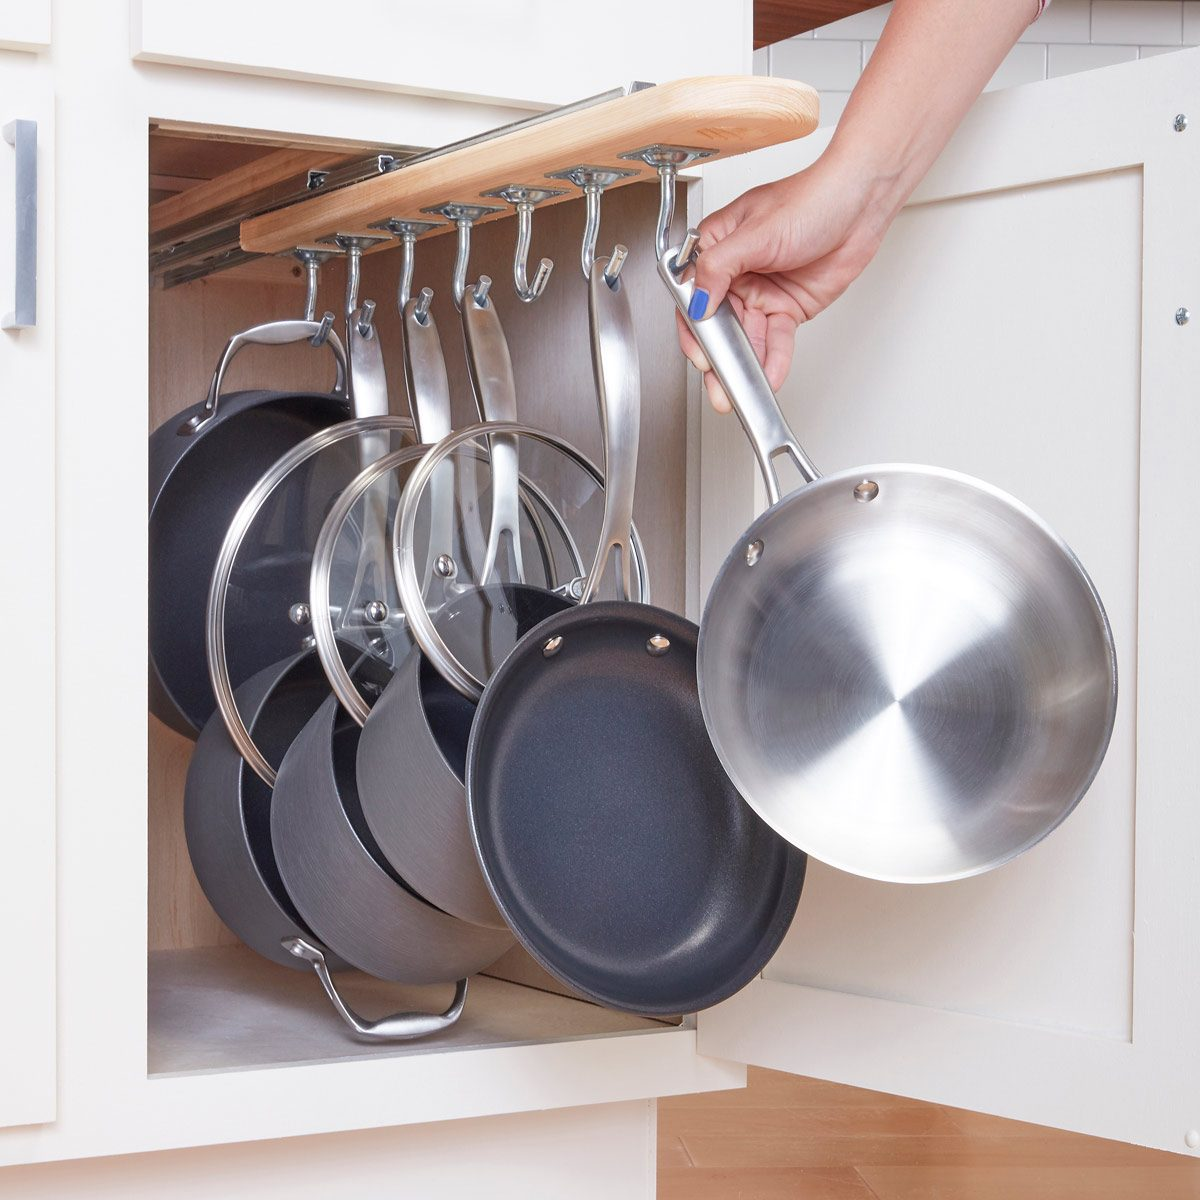 Solutions Storage Kitchen Cabinet Storage Solutions Diy Pot And Pan Pullout The